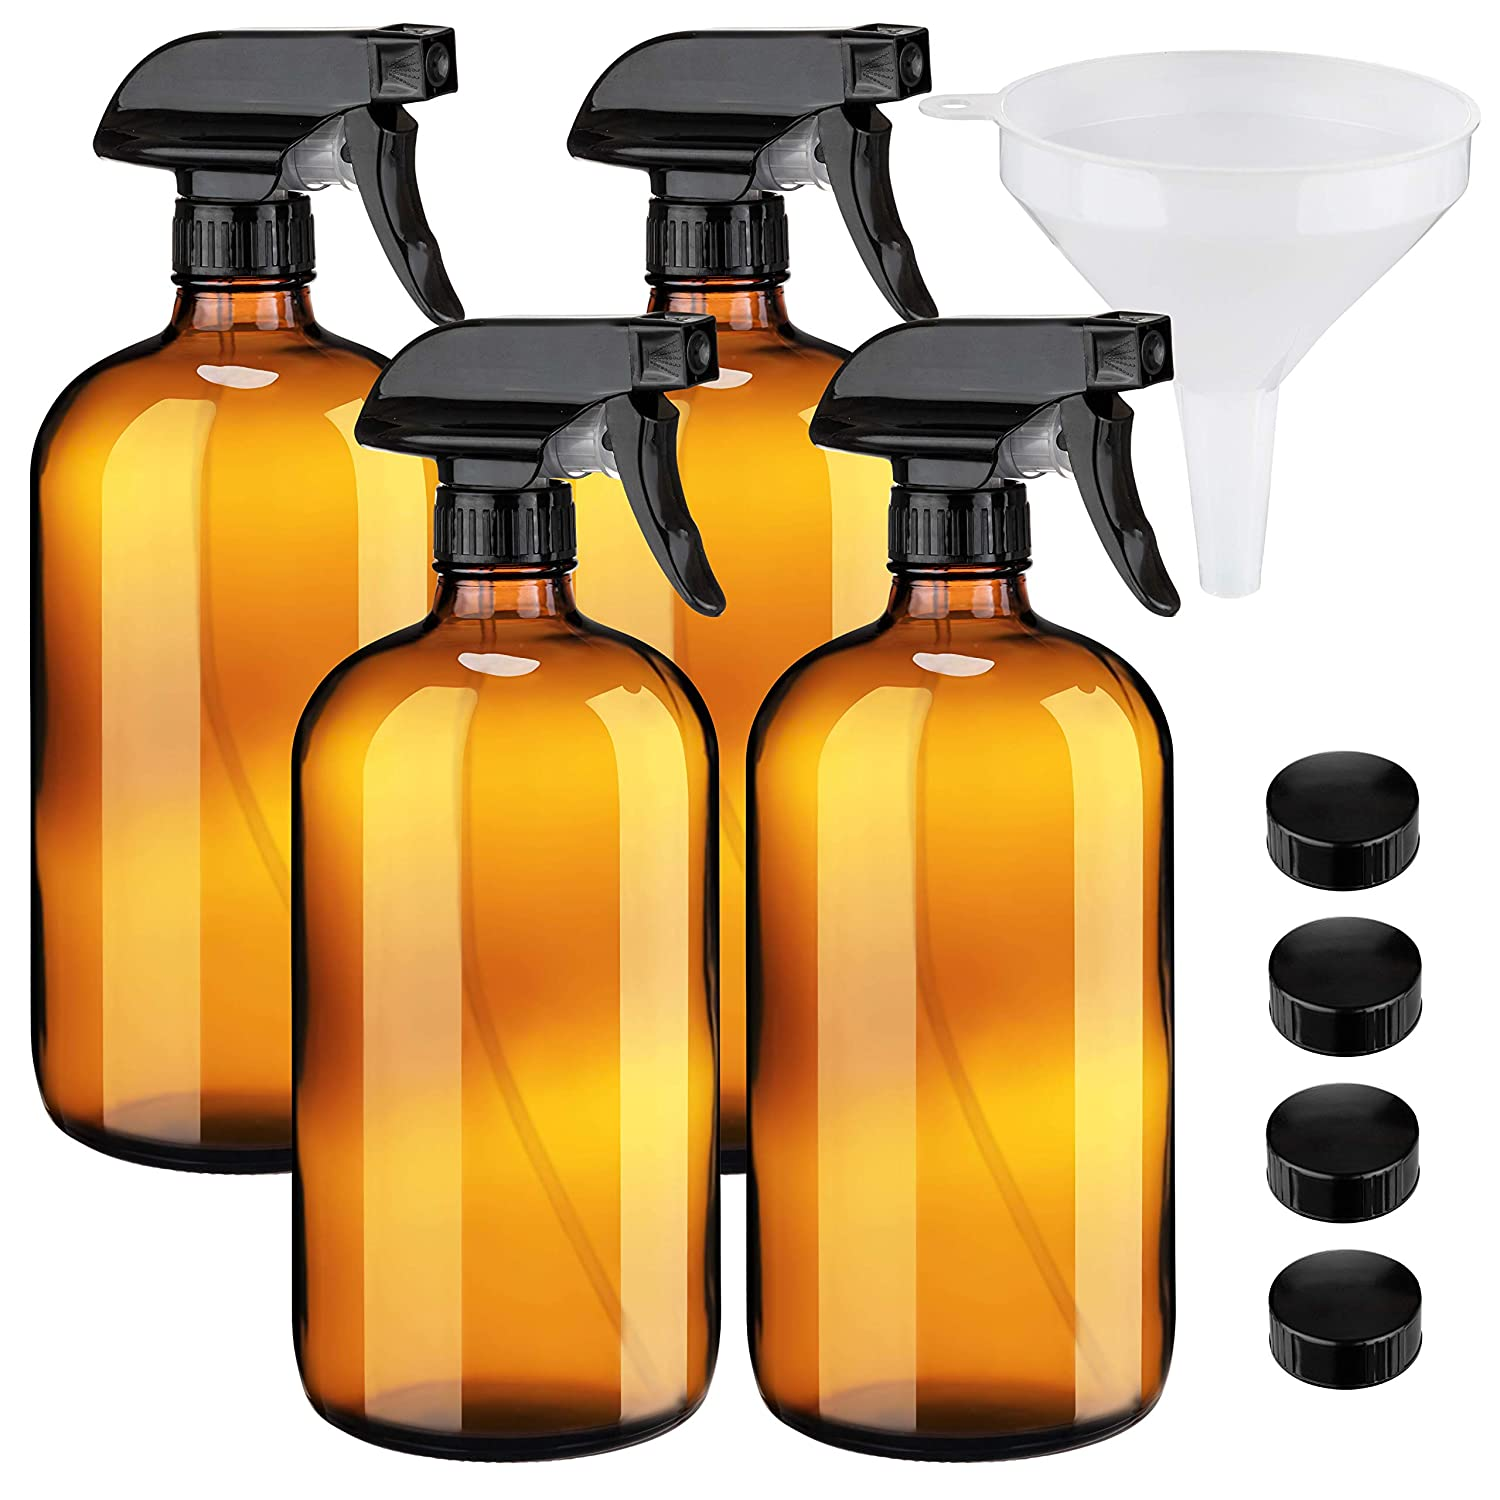 Extra Large 32oz Amber Glass Spray Bottles with Funnel - Refillable Trigger Sprayer Containers for Oils, Cleaning Products, Plant Misting, Cooking, Hair, and Beauty. Includes 4 Bottles and 1 Funnel.